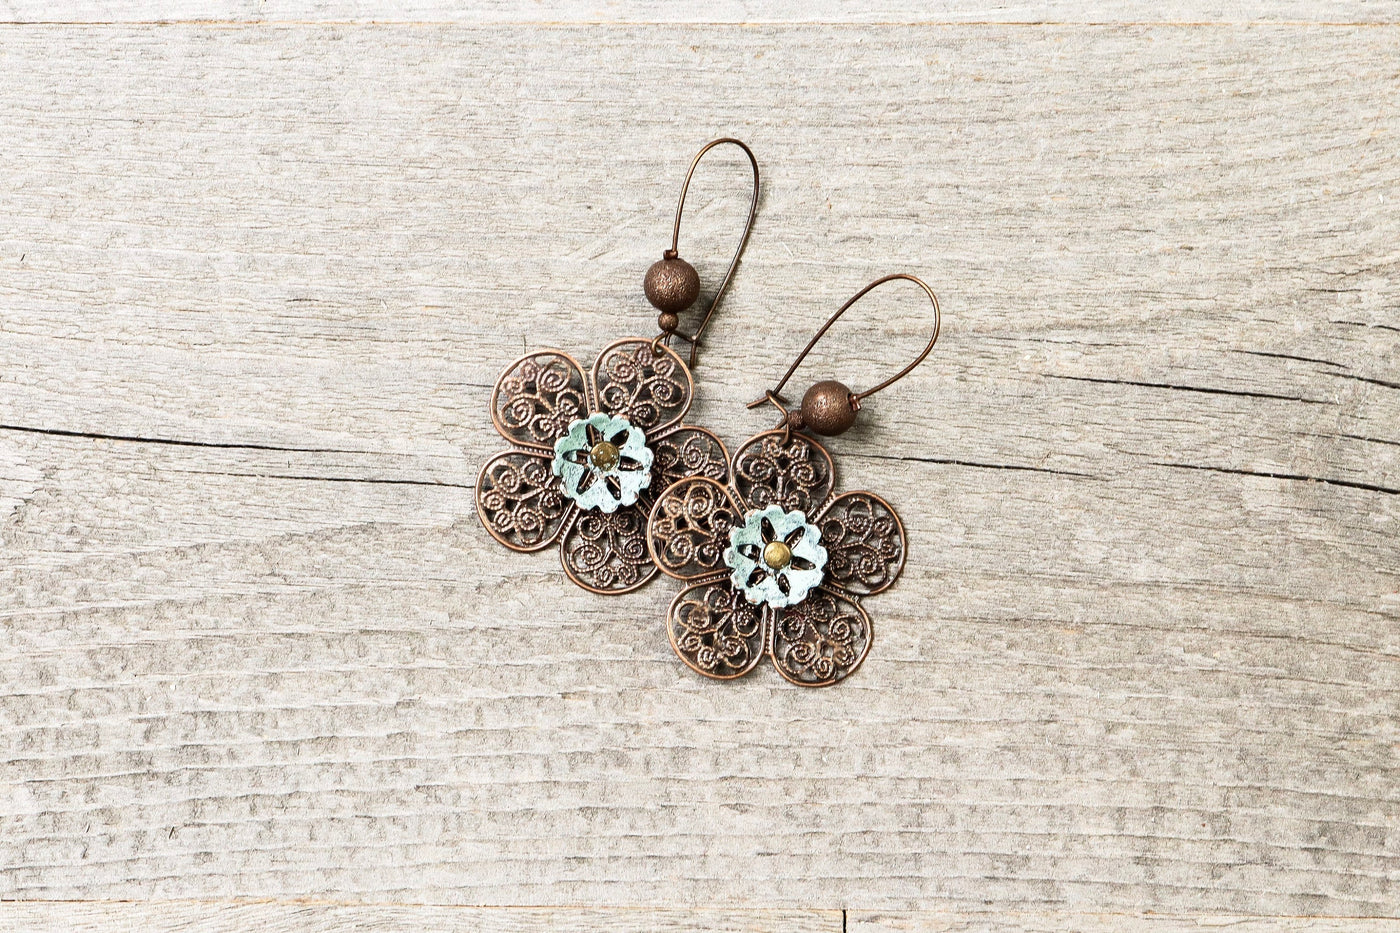 Blue Flower Patina Filigree Earrings - Antique Turquoise Light Dangle Boho Gypsy Hippie Lovely Statement Bohemian Rustic Handmade Jewelry